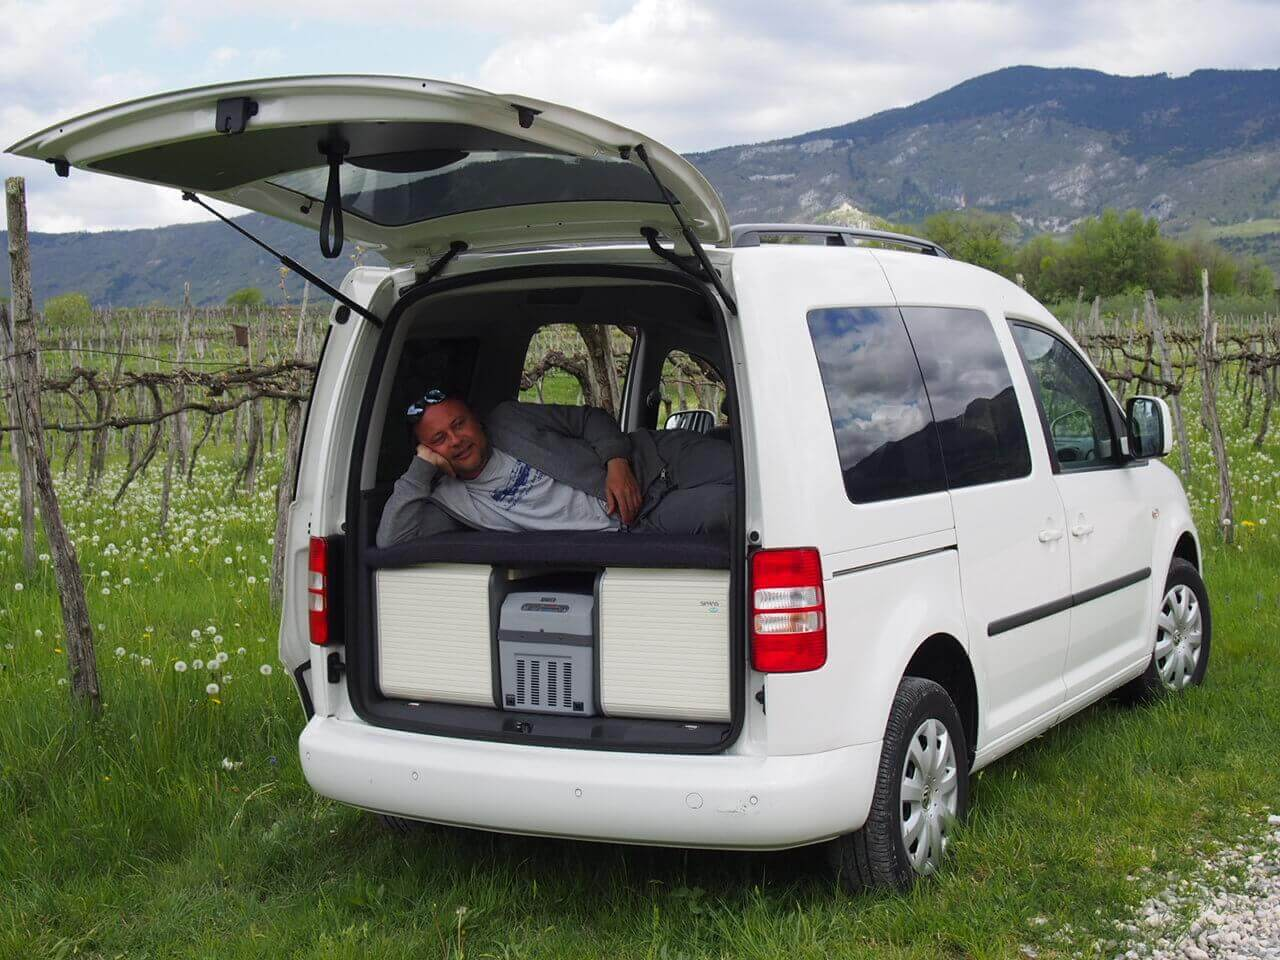 Volkswagen Caddy  small camper van conversion with a neat camping box.